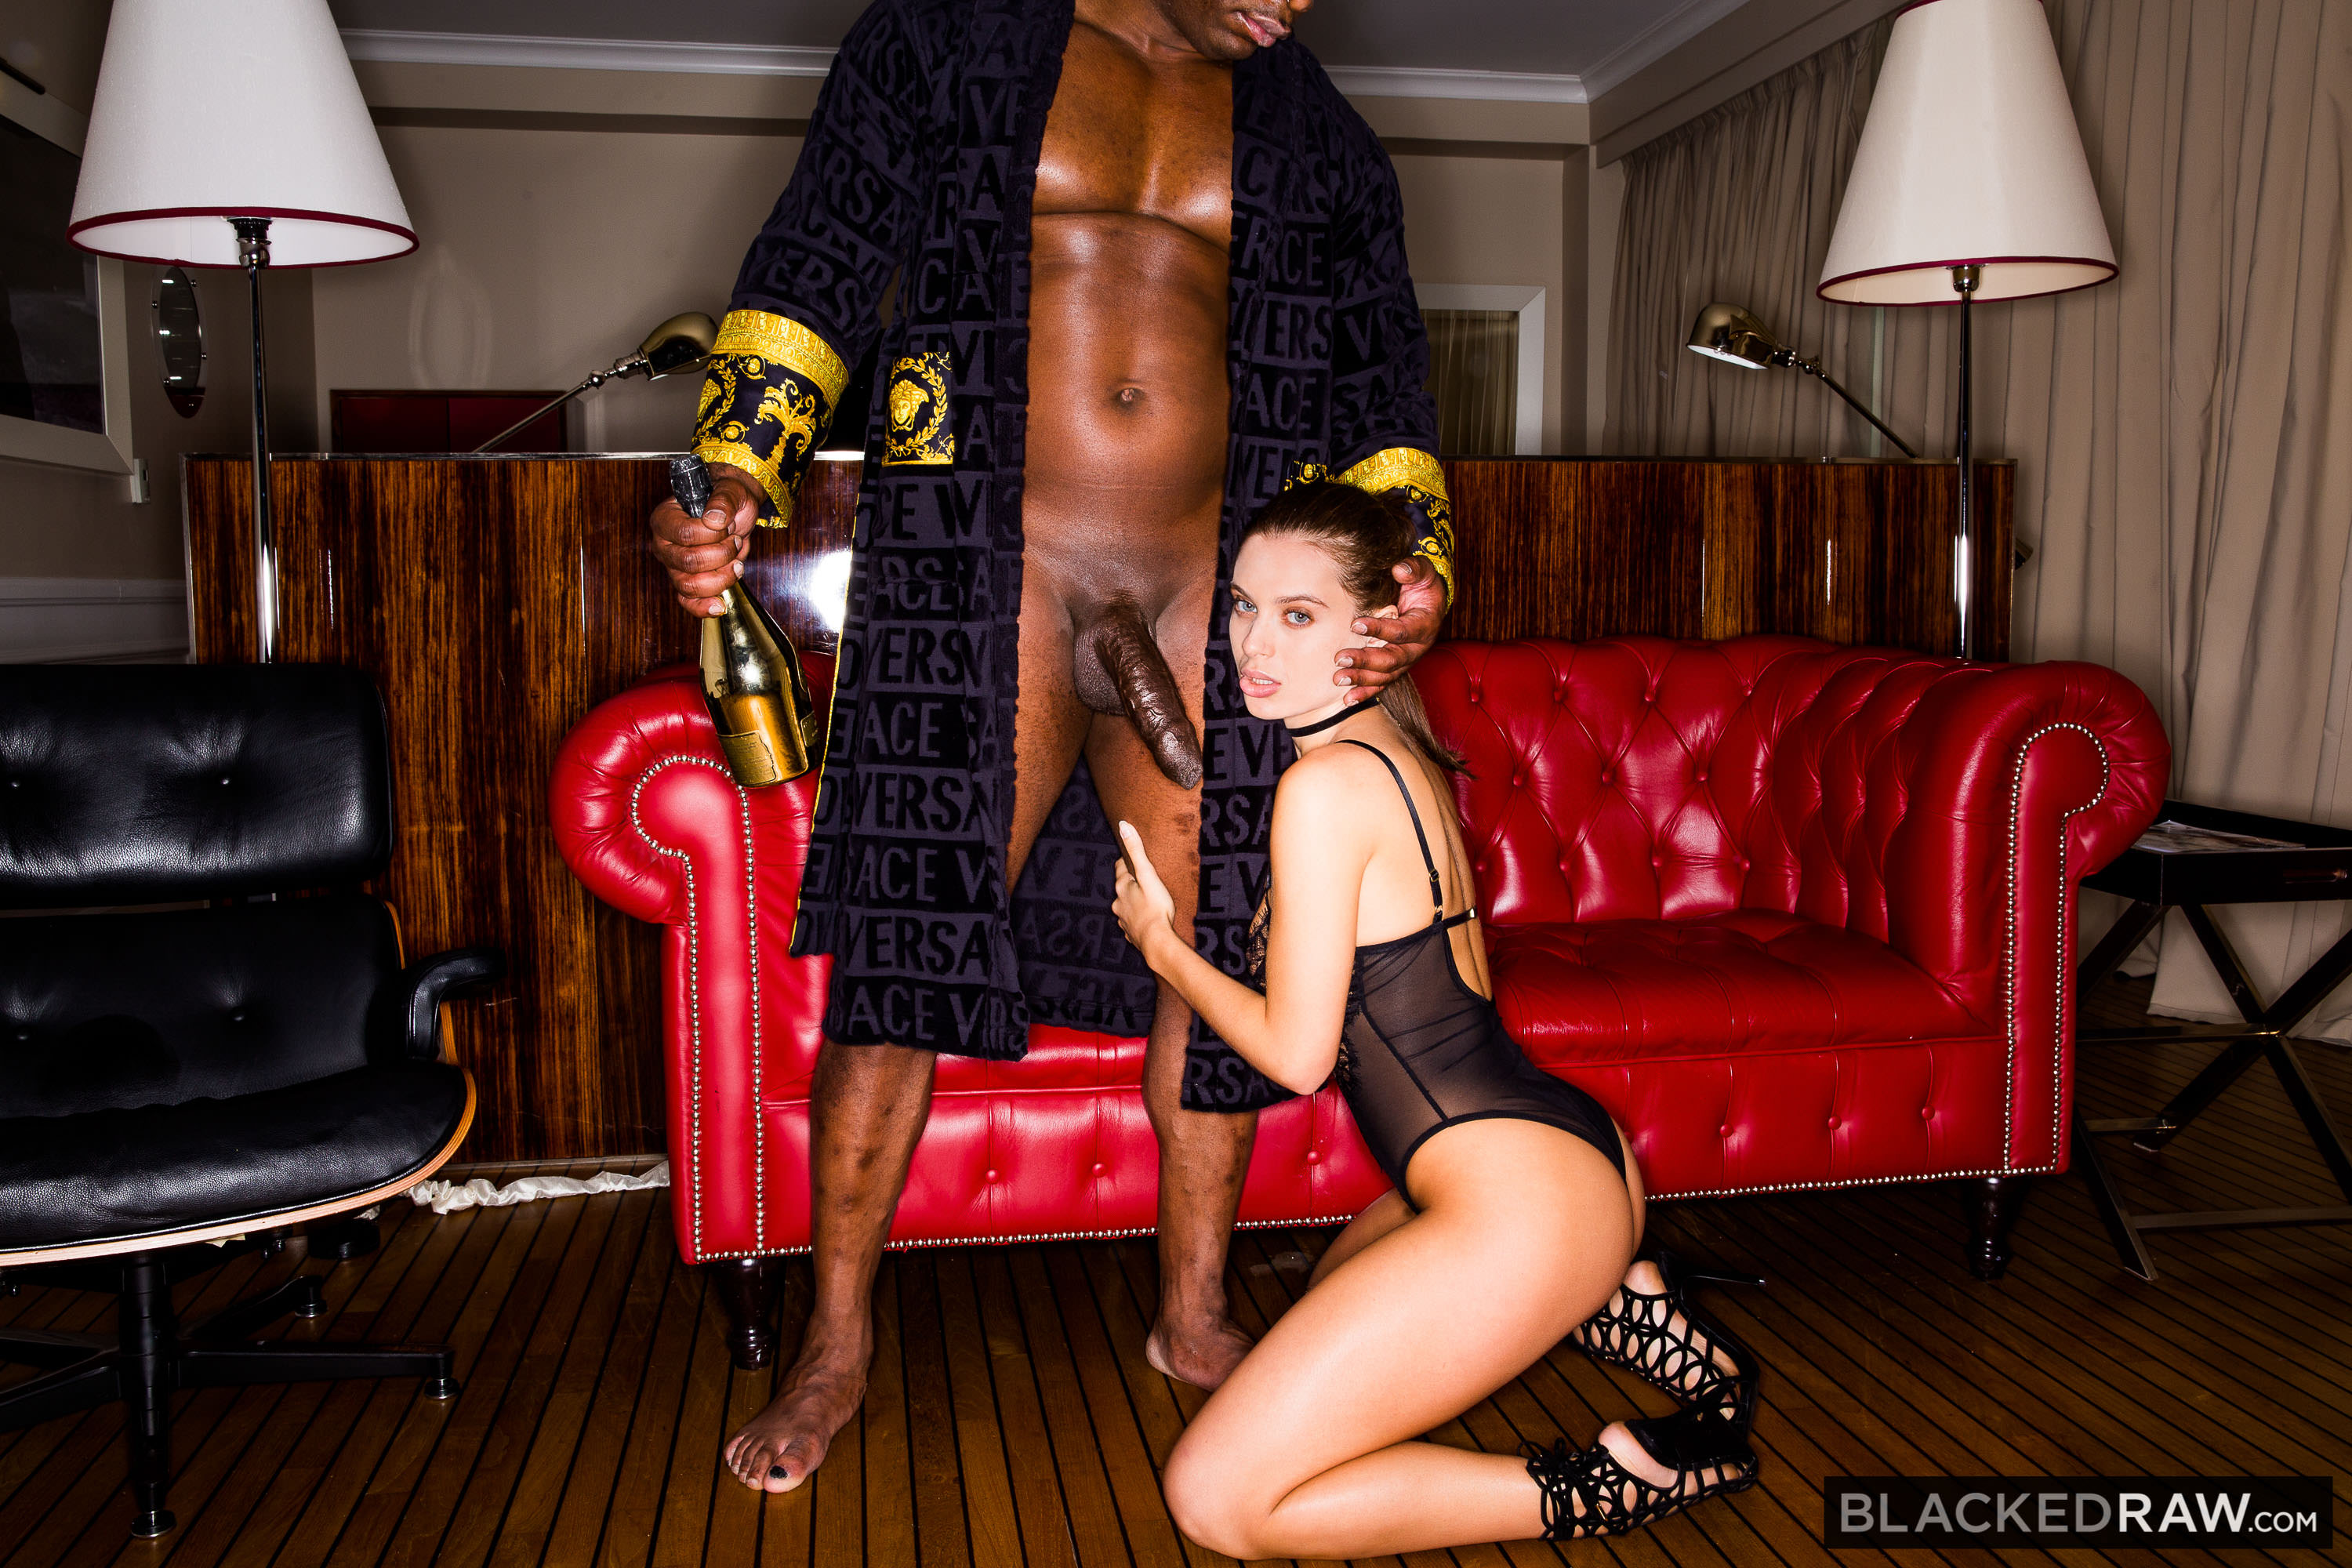 Blackedraw girlfriend takes her open relationship too far wi - 2 part 4